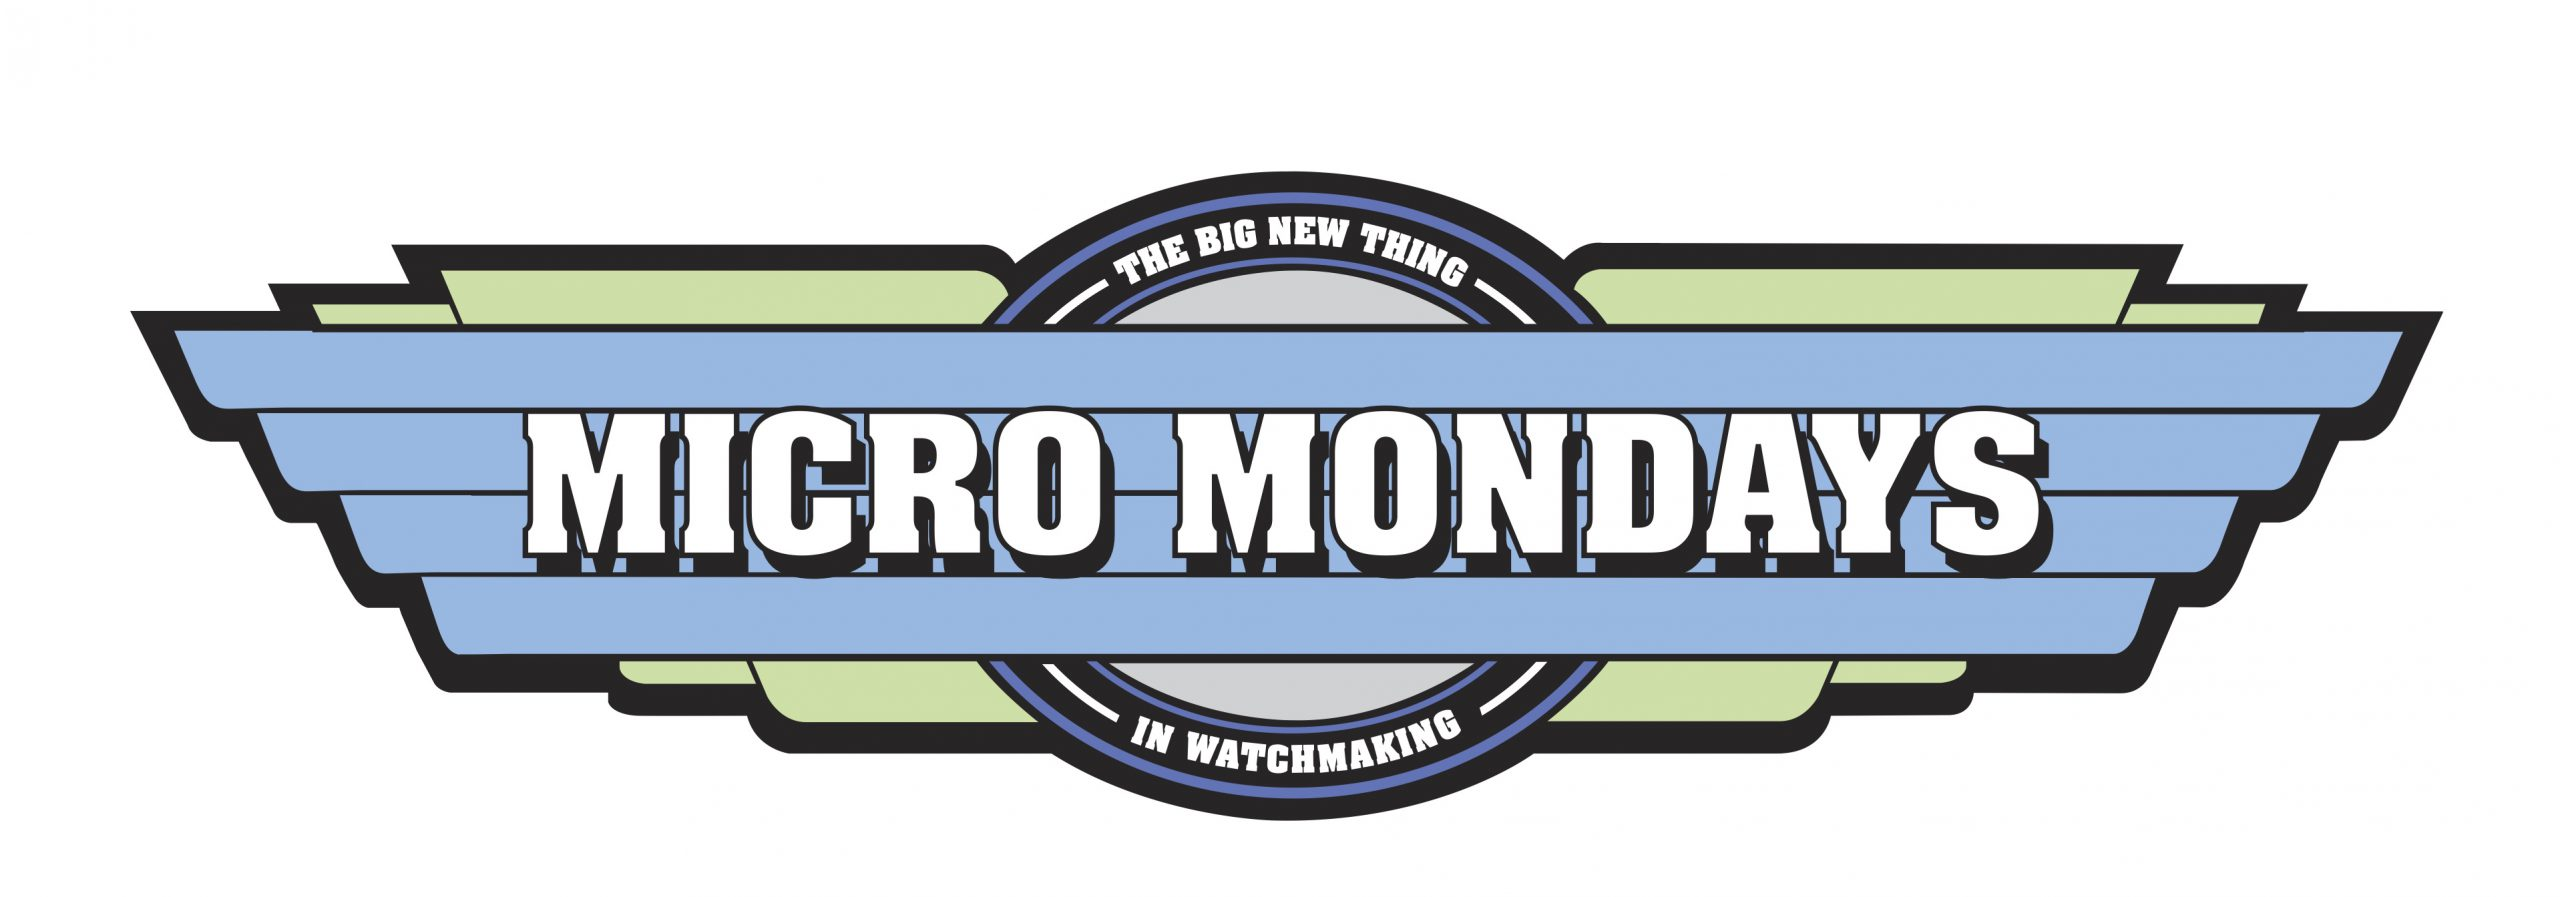 MICRO MONDAYS: Introducing a new weekly series starring the world's best microbrands, kicking off with William Wood Watches!